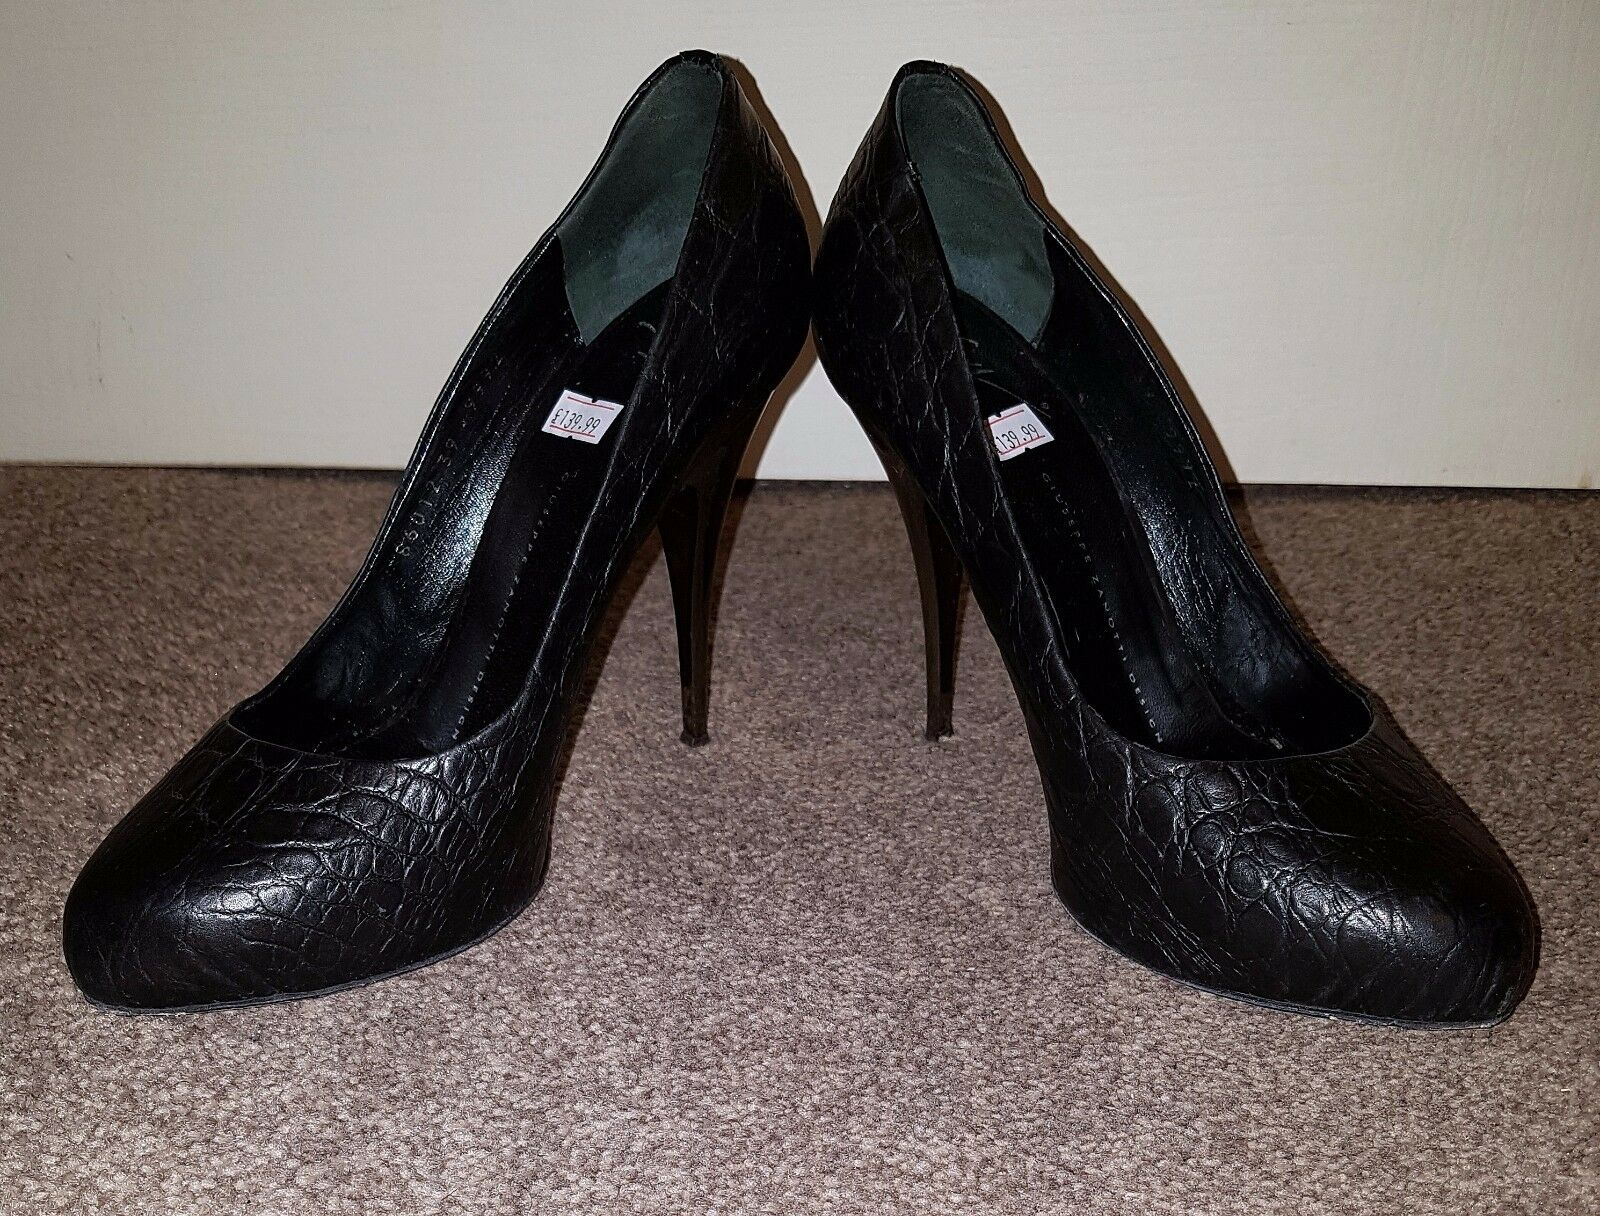 Giuseppe Black Black Giuseppe Leather Heels Shoes Women   Ladies Size 6 39 d33bfd